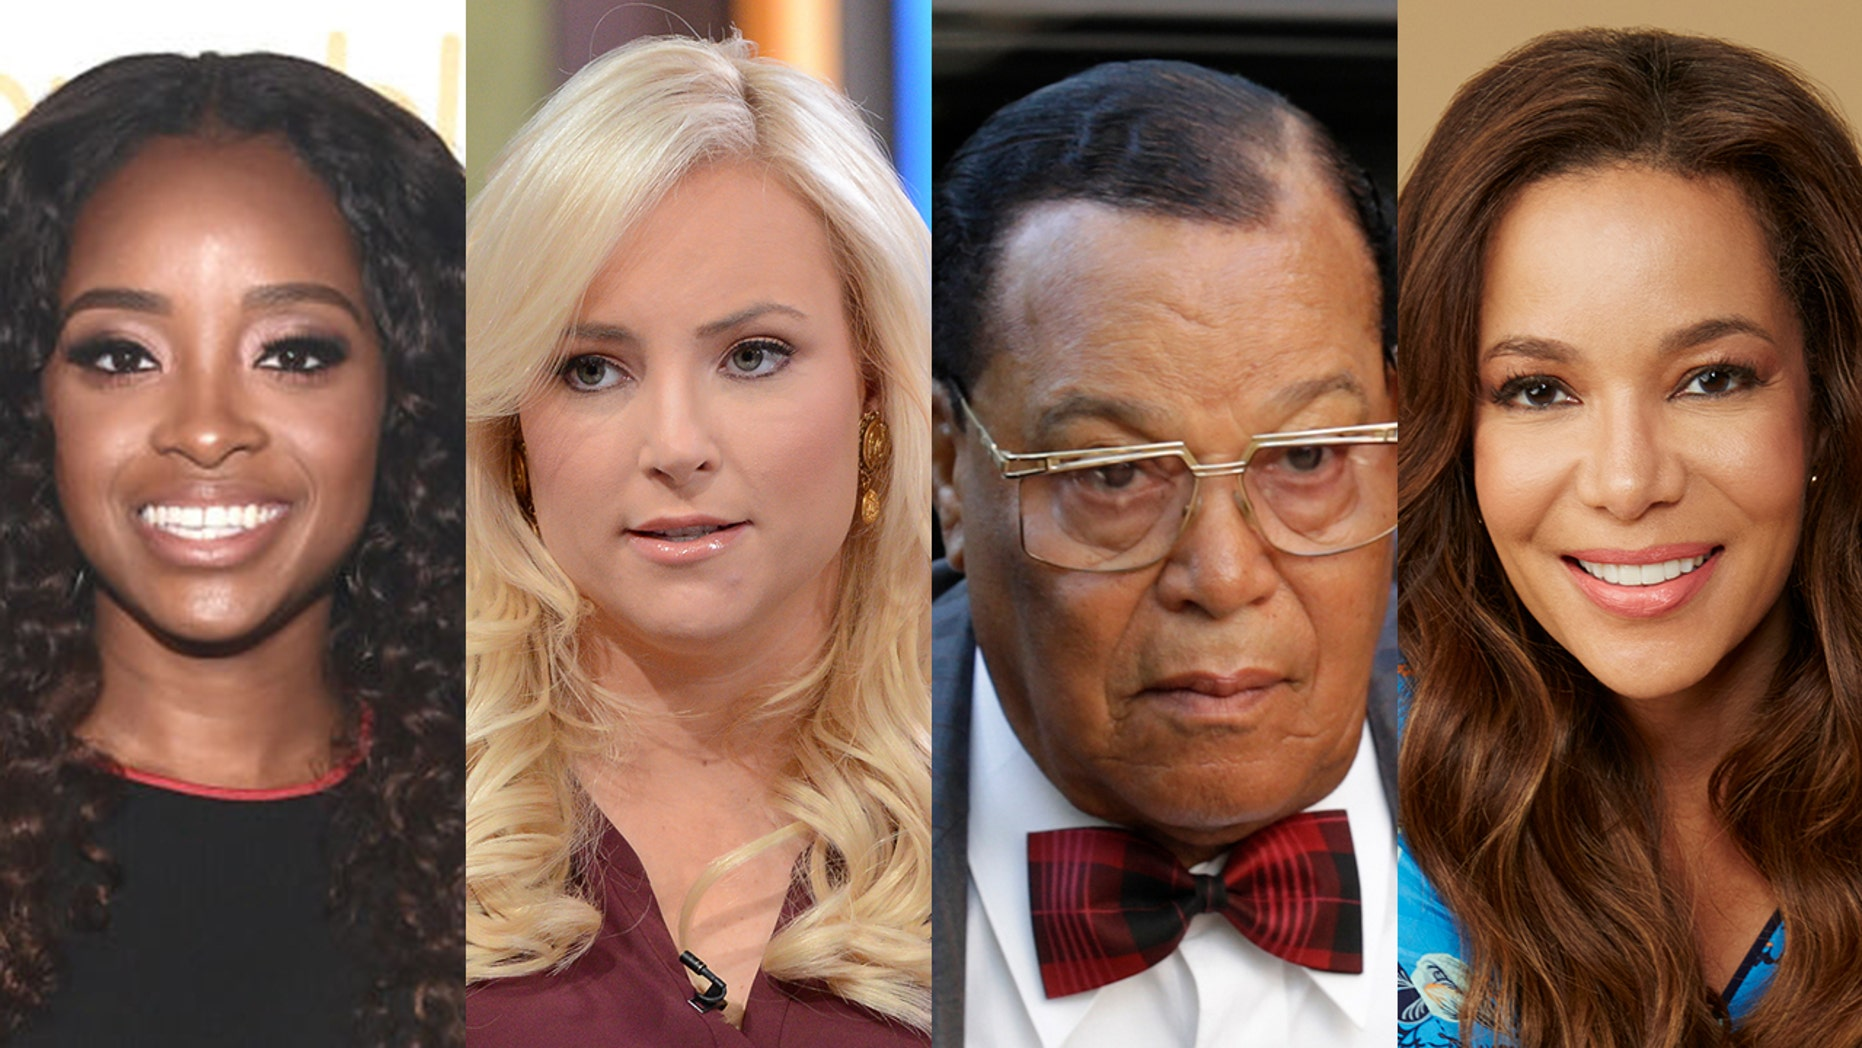 fcf1a09e3acd7 Meghan McCain and Sunny Hostin grilled Women s March co-founder Tamika  Mallory over her ties